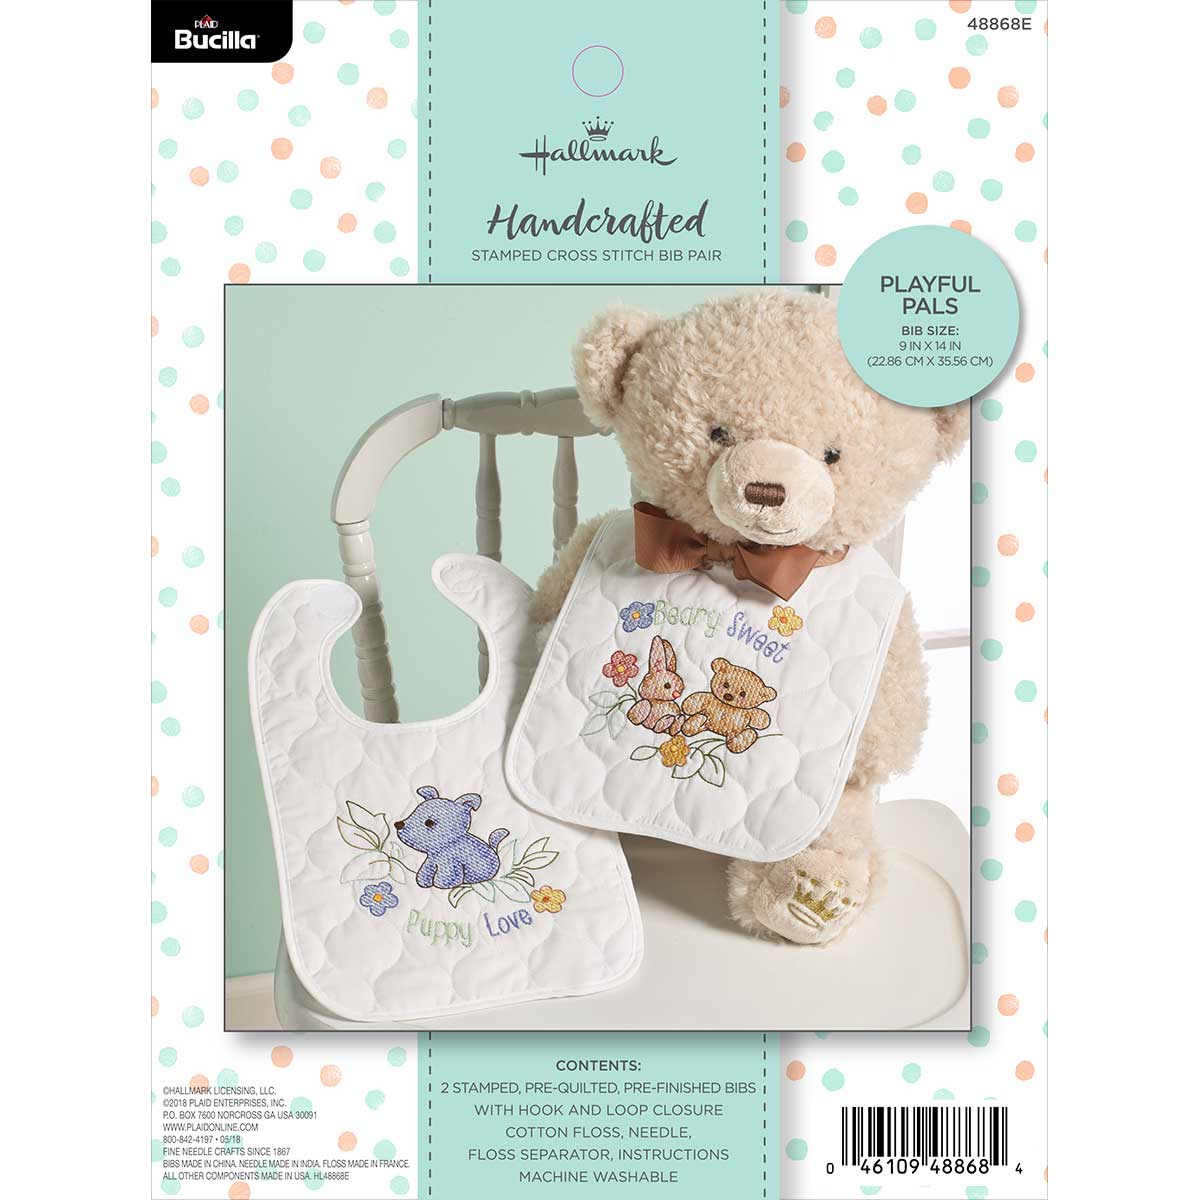 Bucilla ® Baby - Stamped Cross Stitch - Crib Ensembles - Hallmark - Playful Pals - Bib Pair Kit - 48